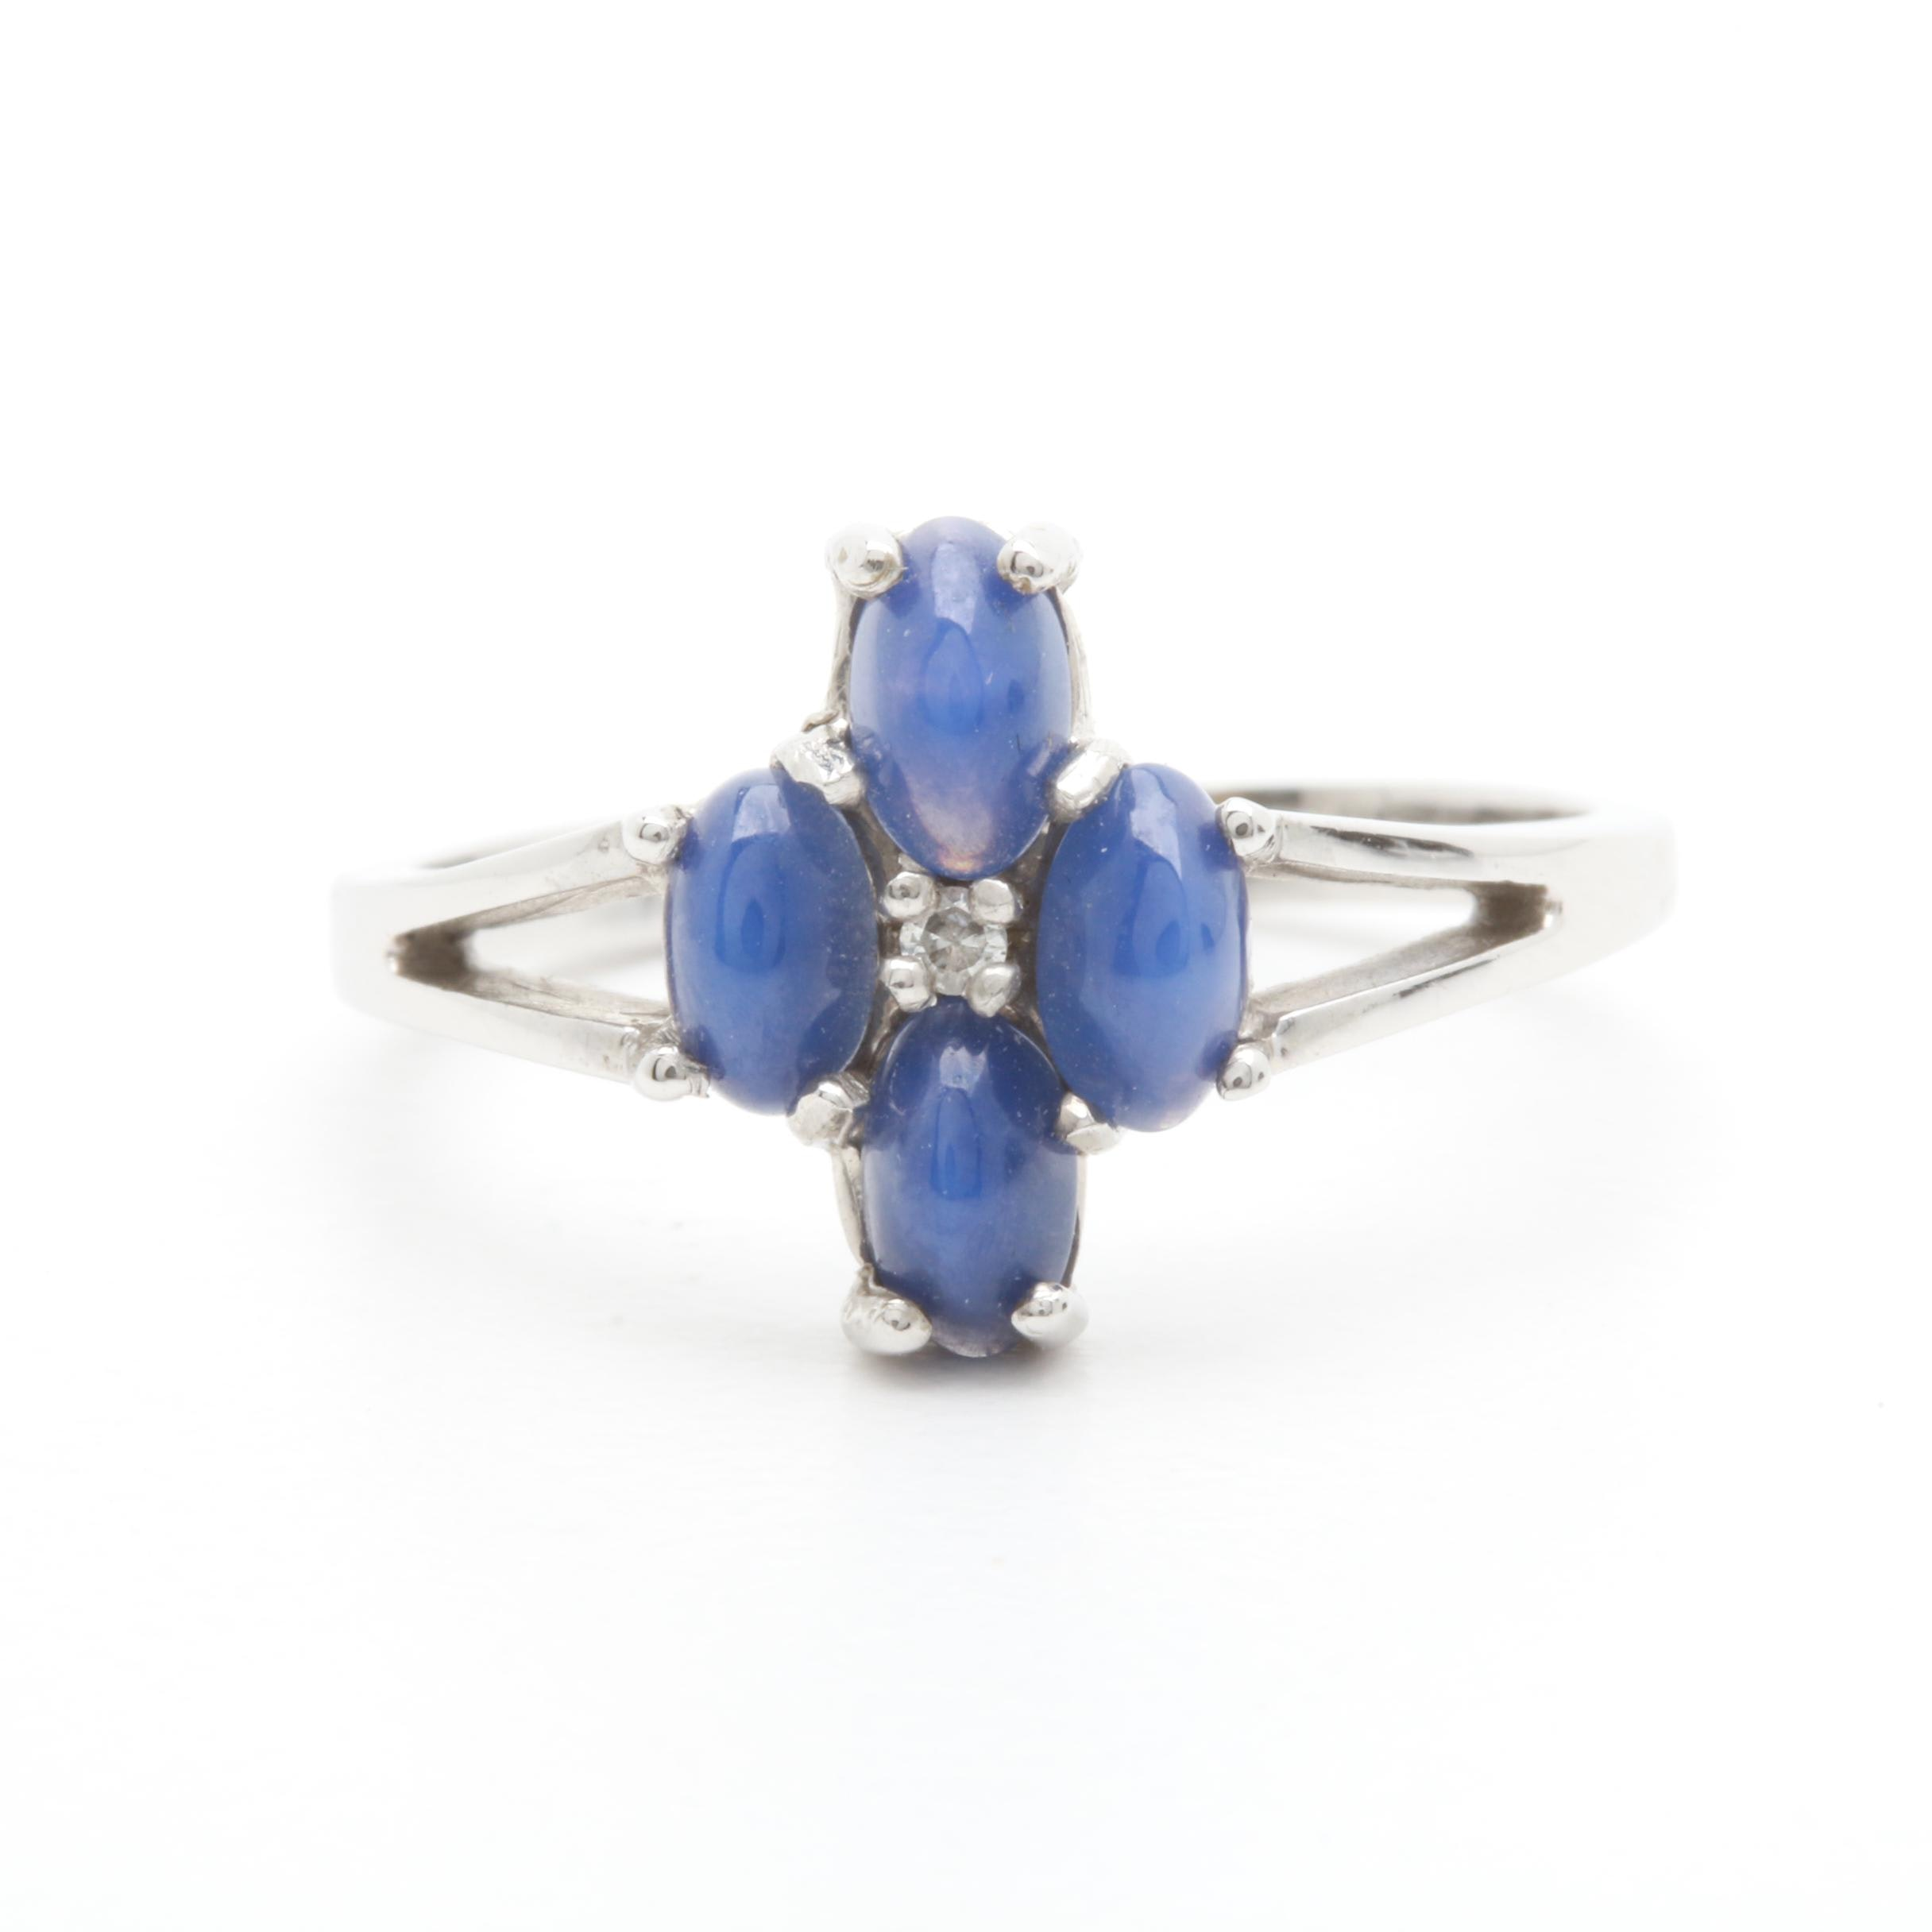 10K White Gold Diamond and Synthetic Star Sapphire Ring